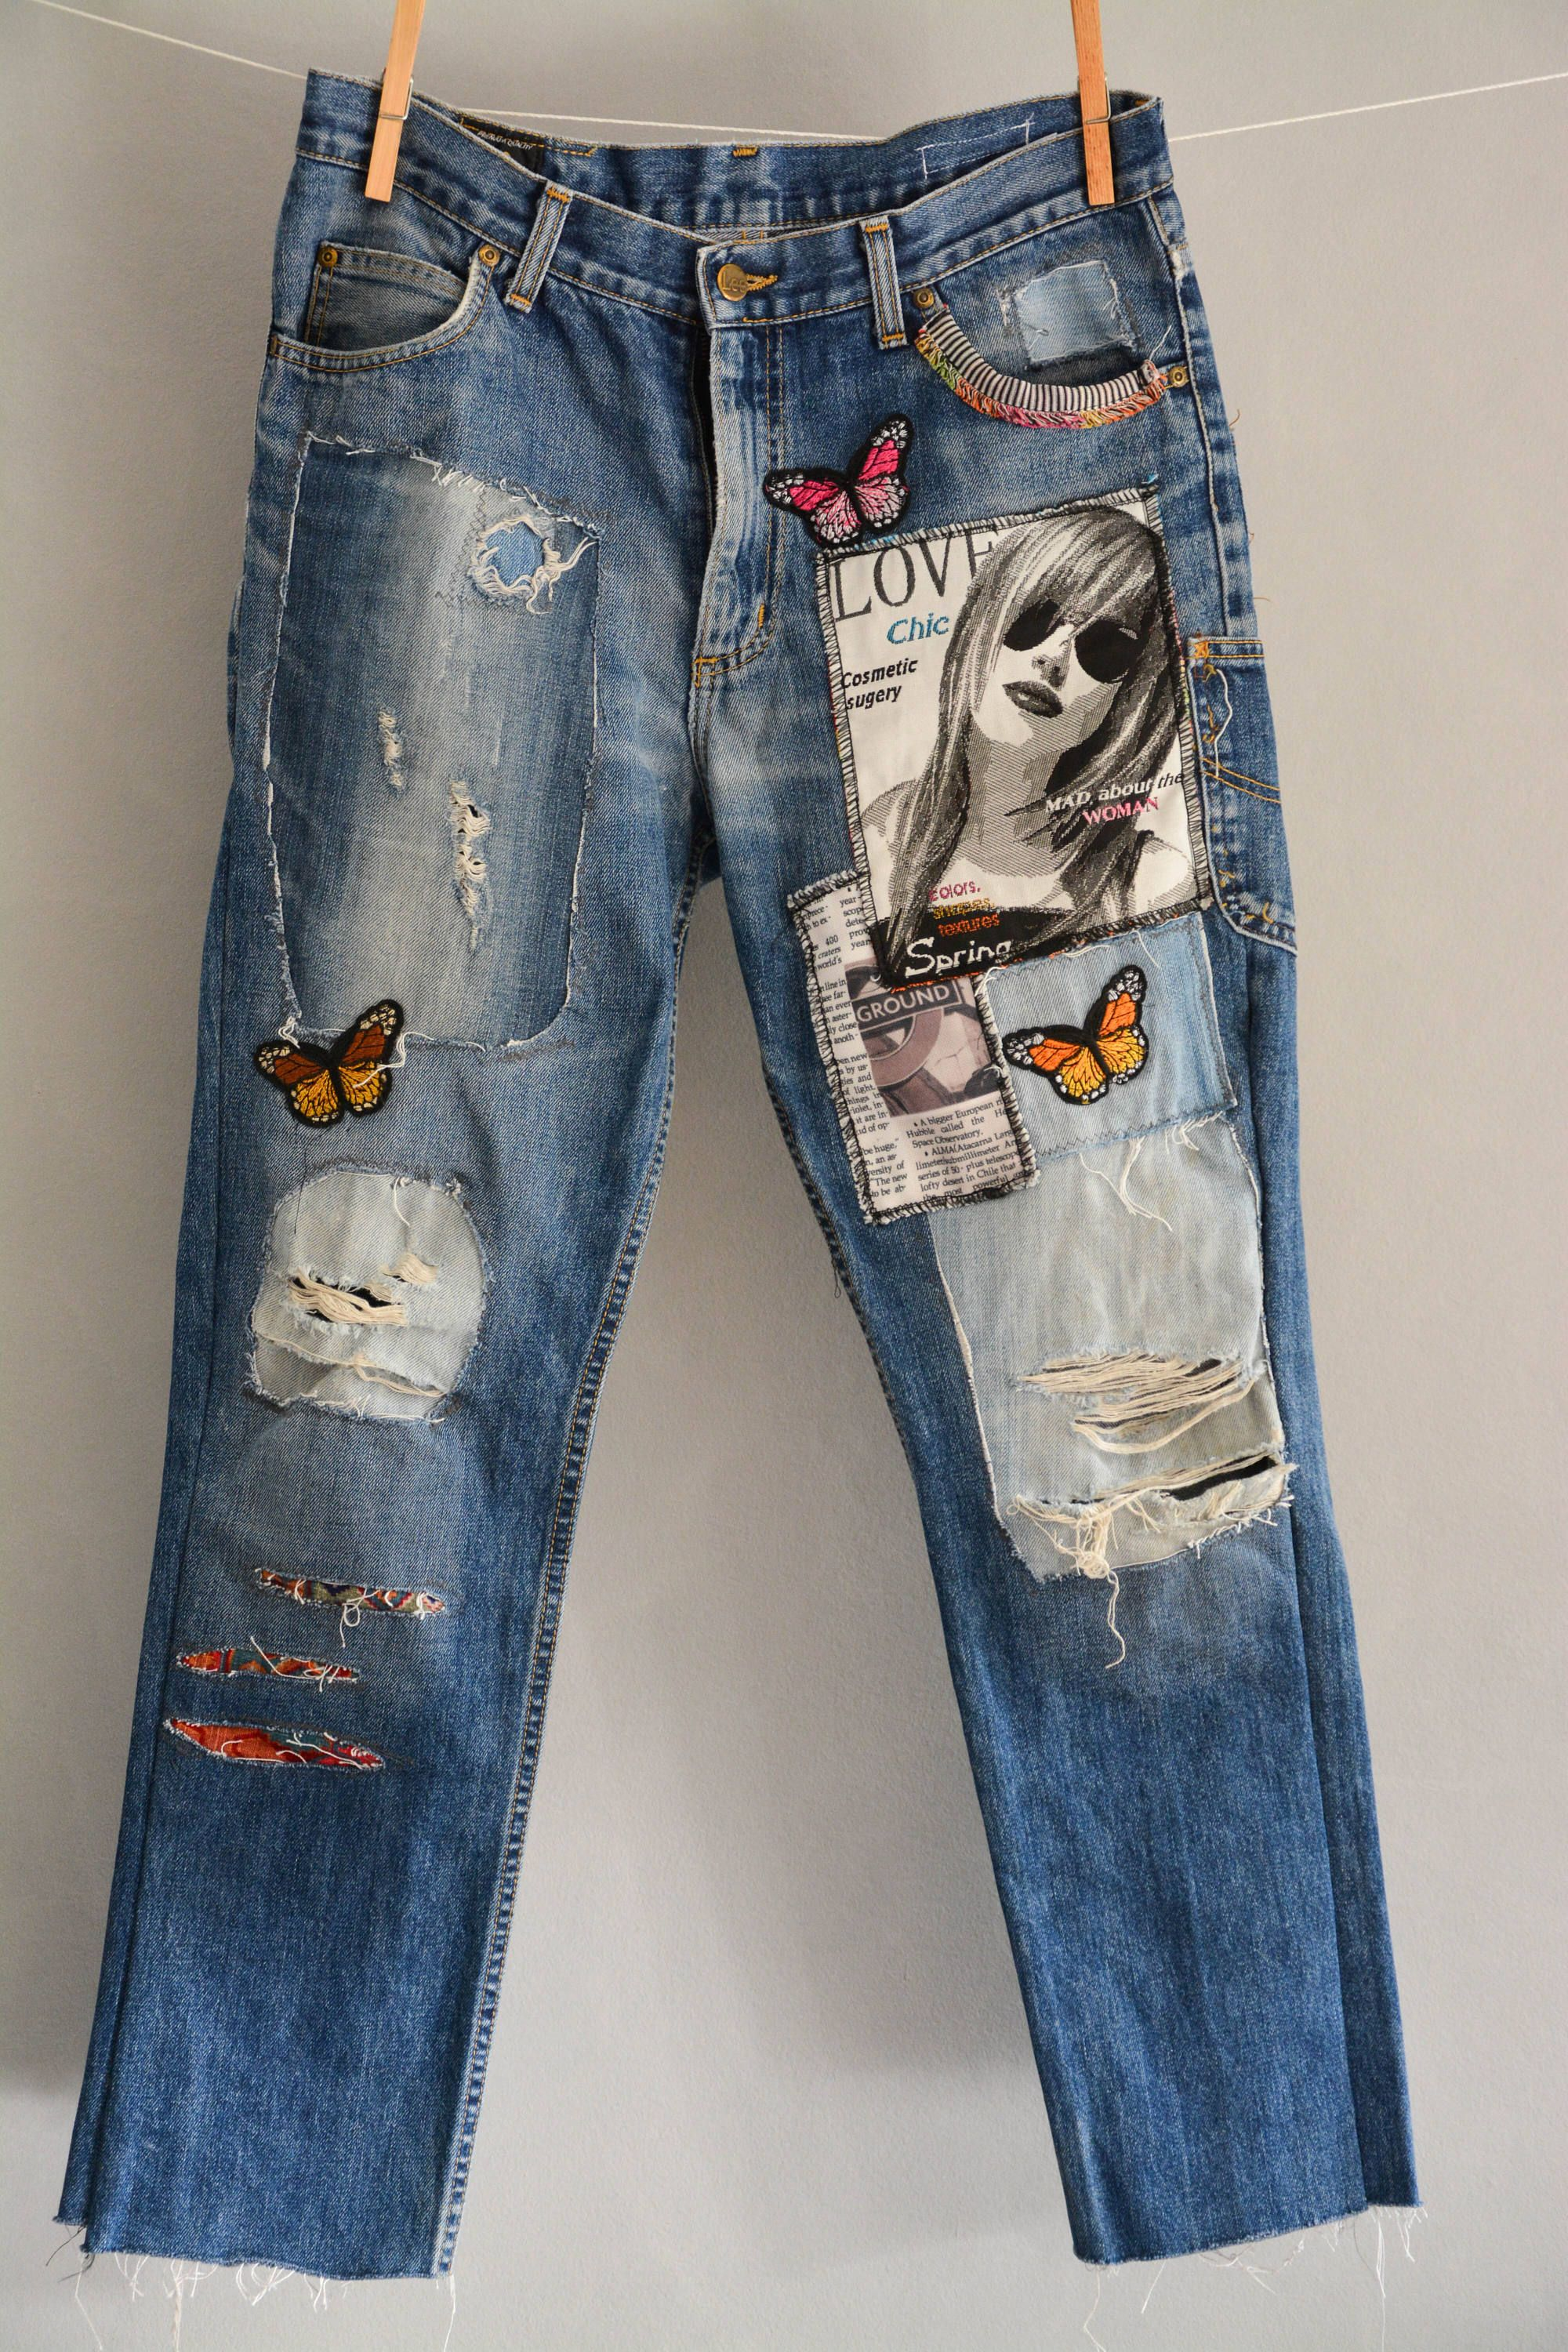 90s Worn In Faded Wash Jeans High Waist Denim Hipster Mom Burnout Jeans Vintage Distressed Jeans Womens size 8